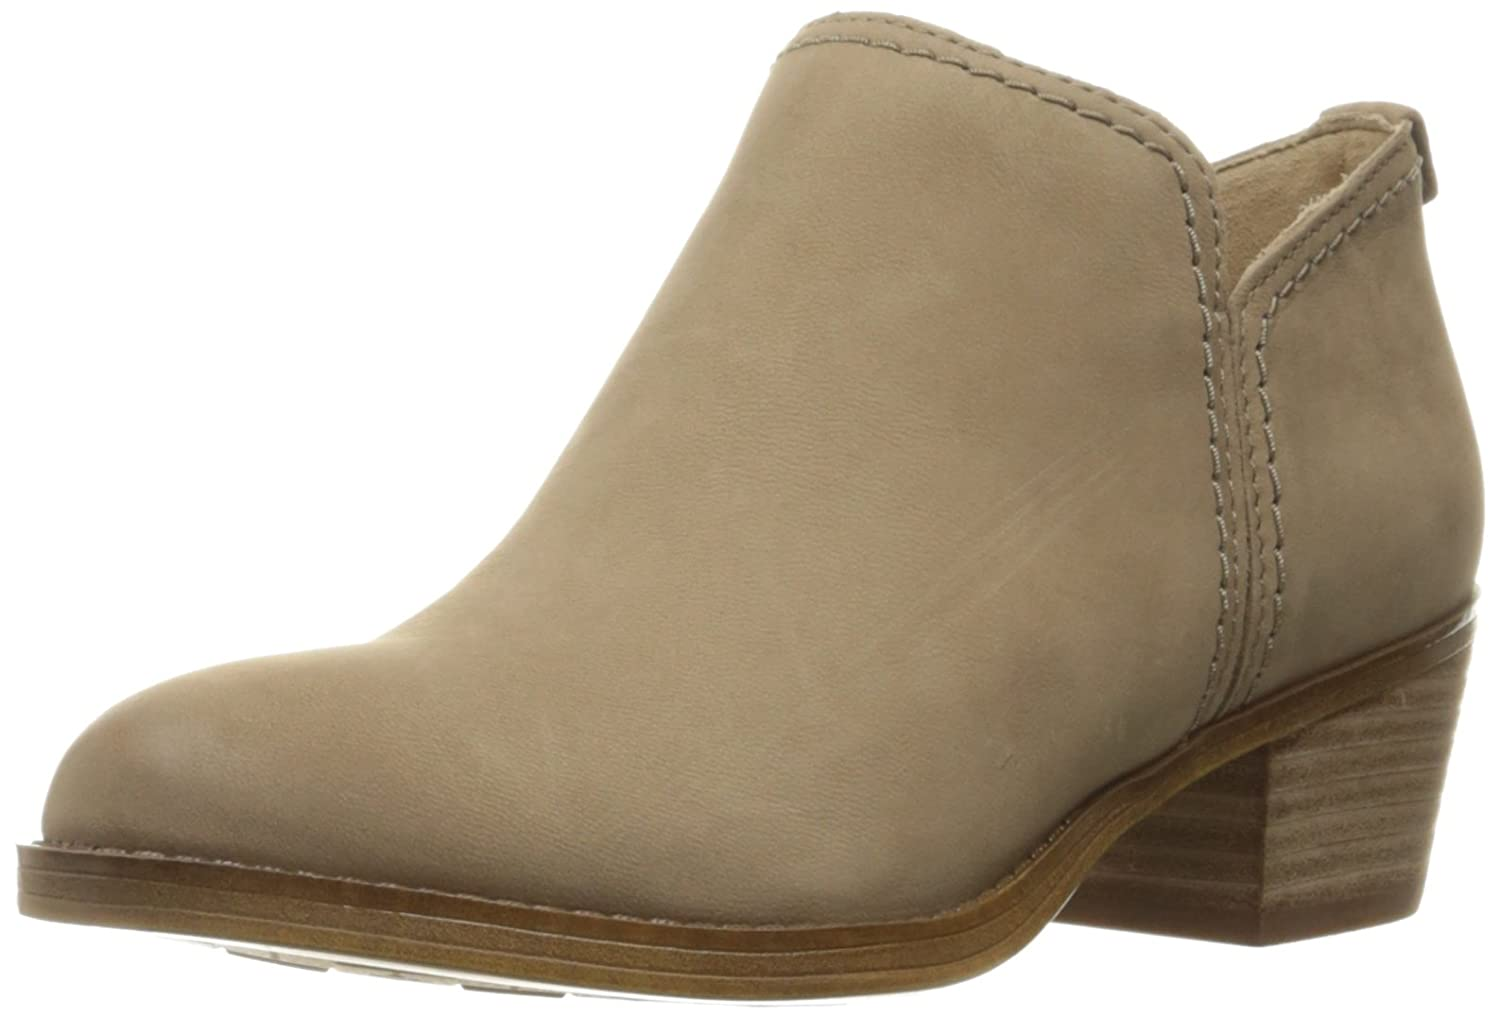 Naturalizer Women's Zarie Boot B01HN8A4WU 10.5 B(M) US|Taupe